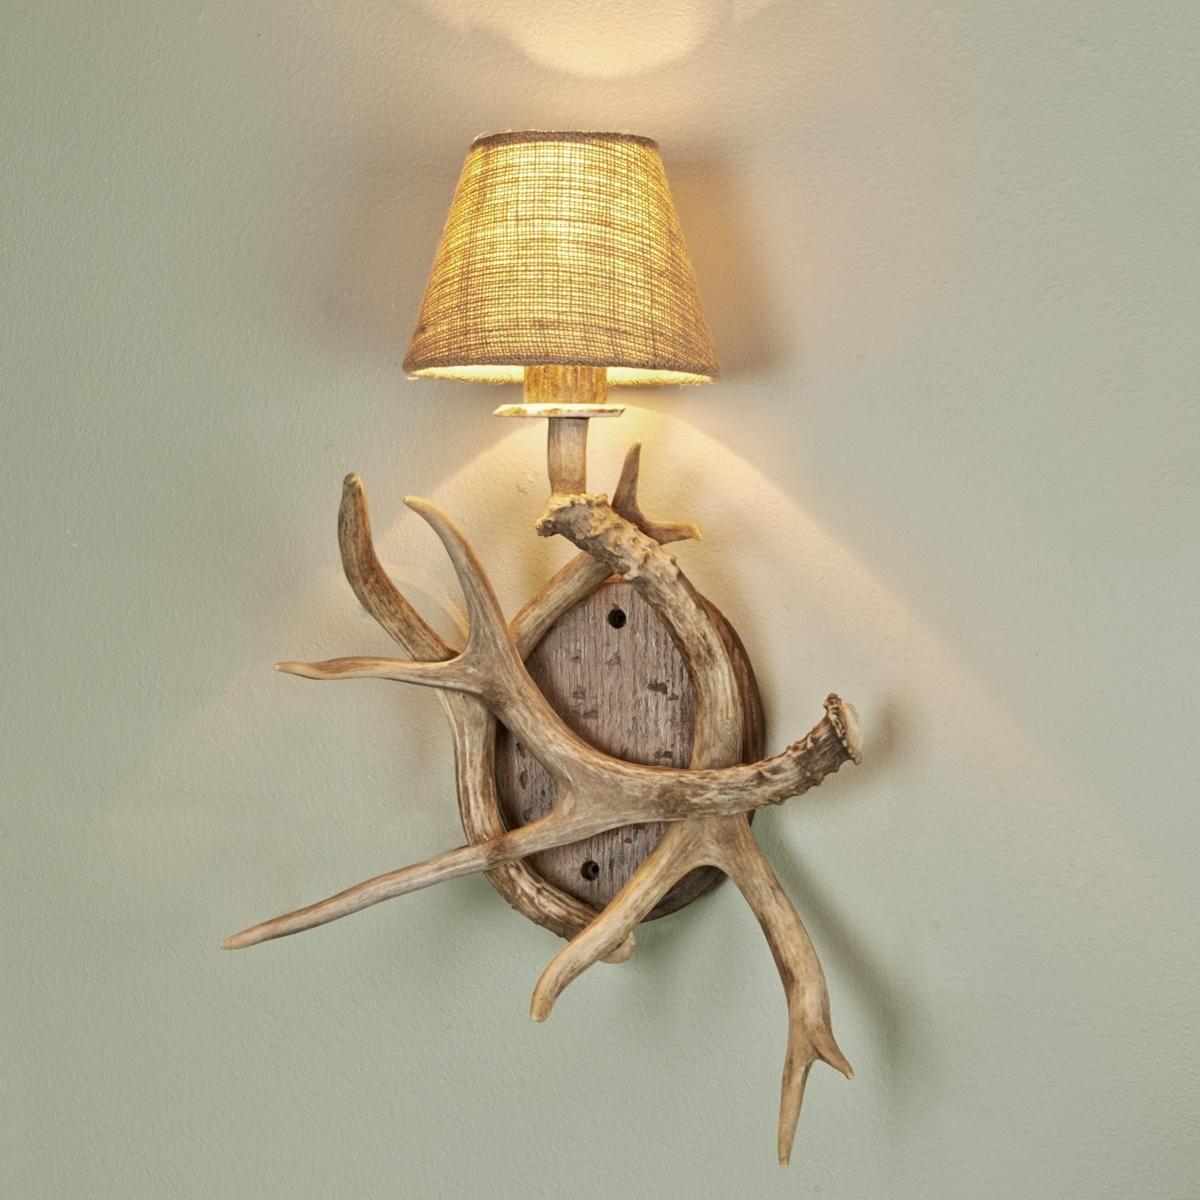 Whitetail Deer Antler Wall Sconce This 1 light whitetail deer antler wall sconce made in & Whitetail Deer Antler Wall Sconce This 1 light whitetail deer ... azcodes.com